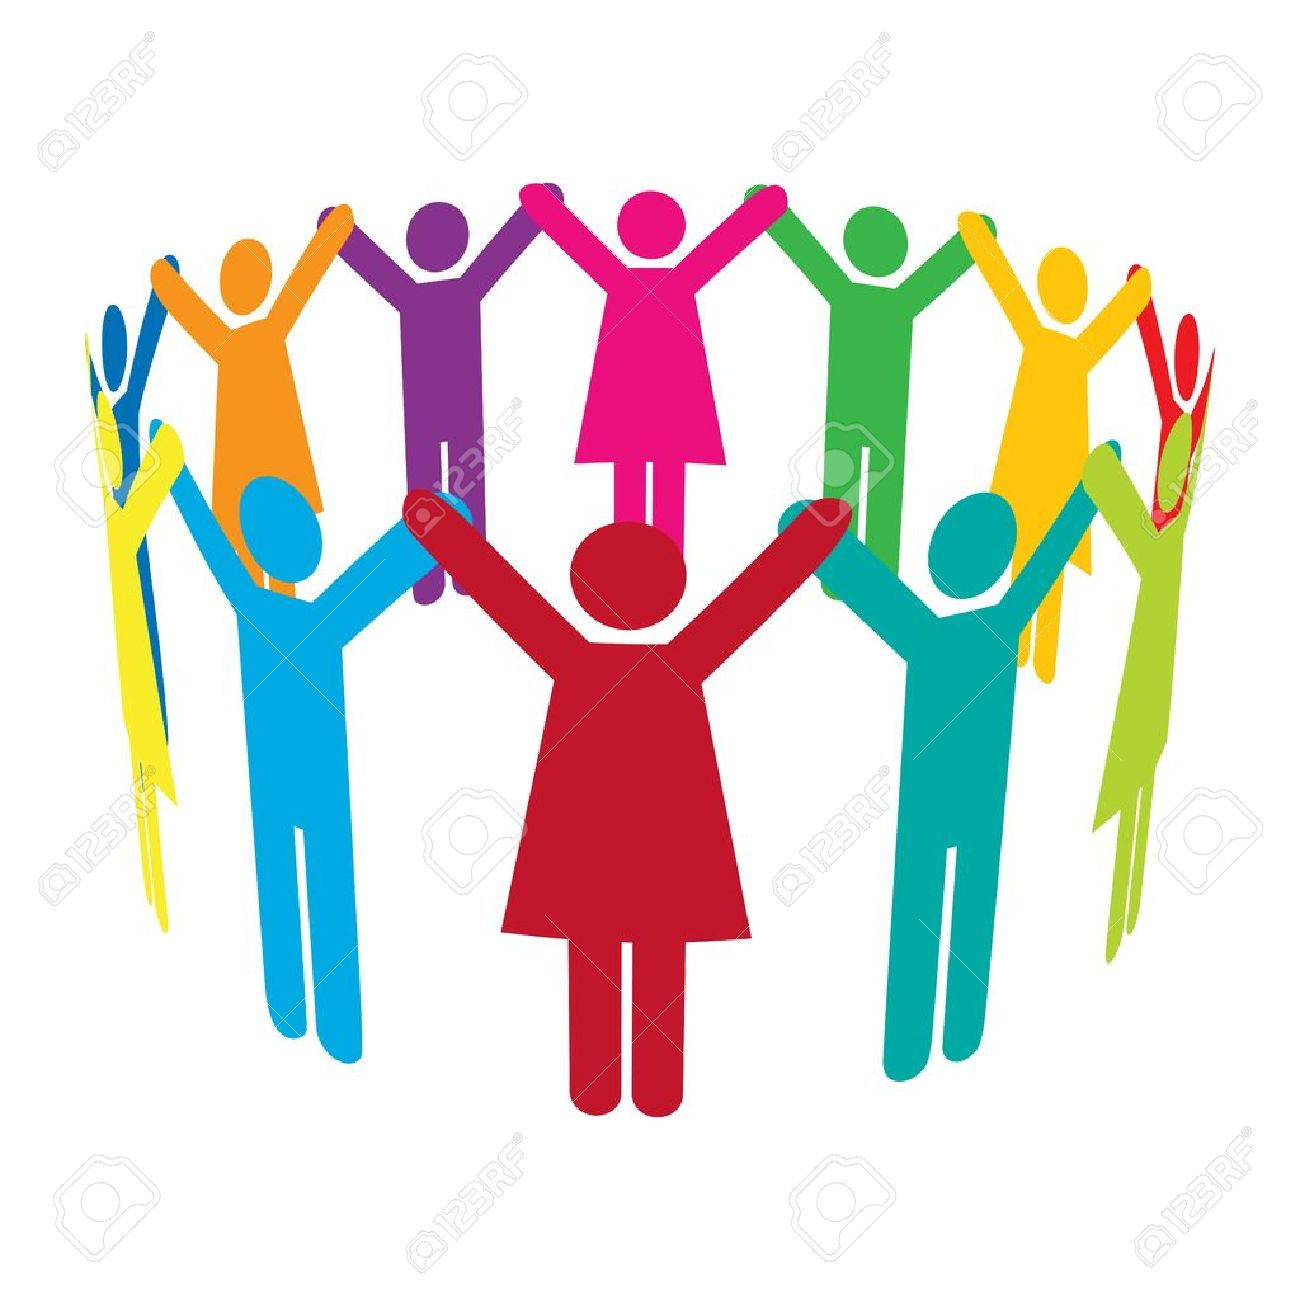 colourful people holding hands high up in a circle royalty free rh 123rf com Drawings of People Holding Hands Women Holding Hands Clip Art